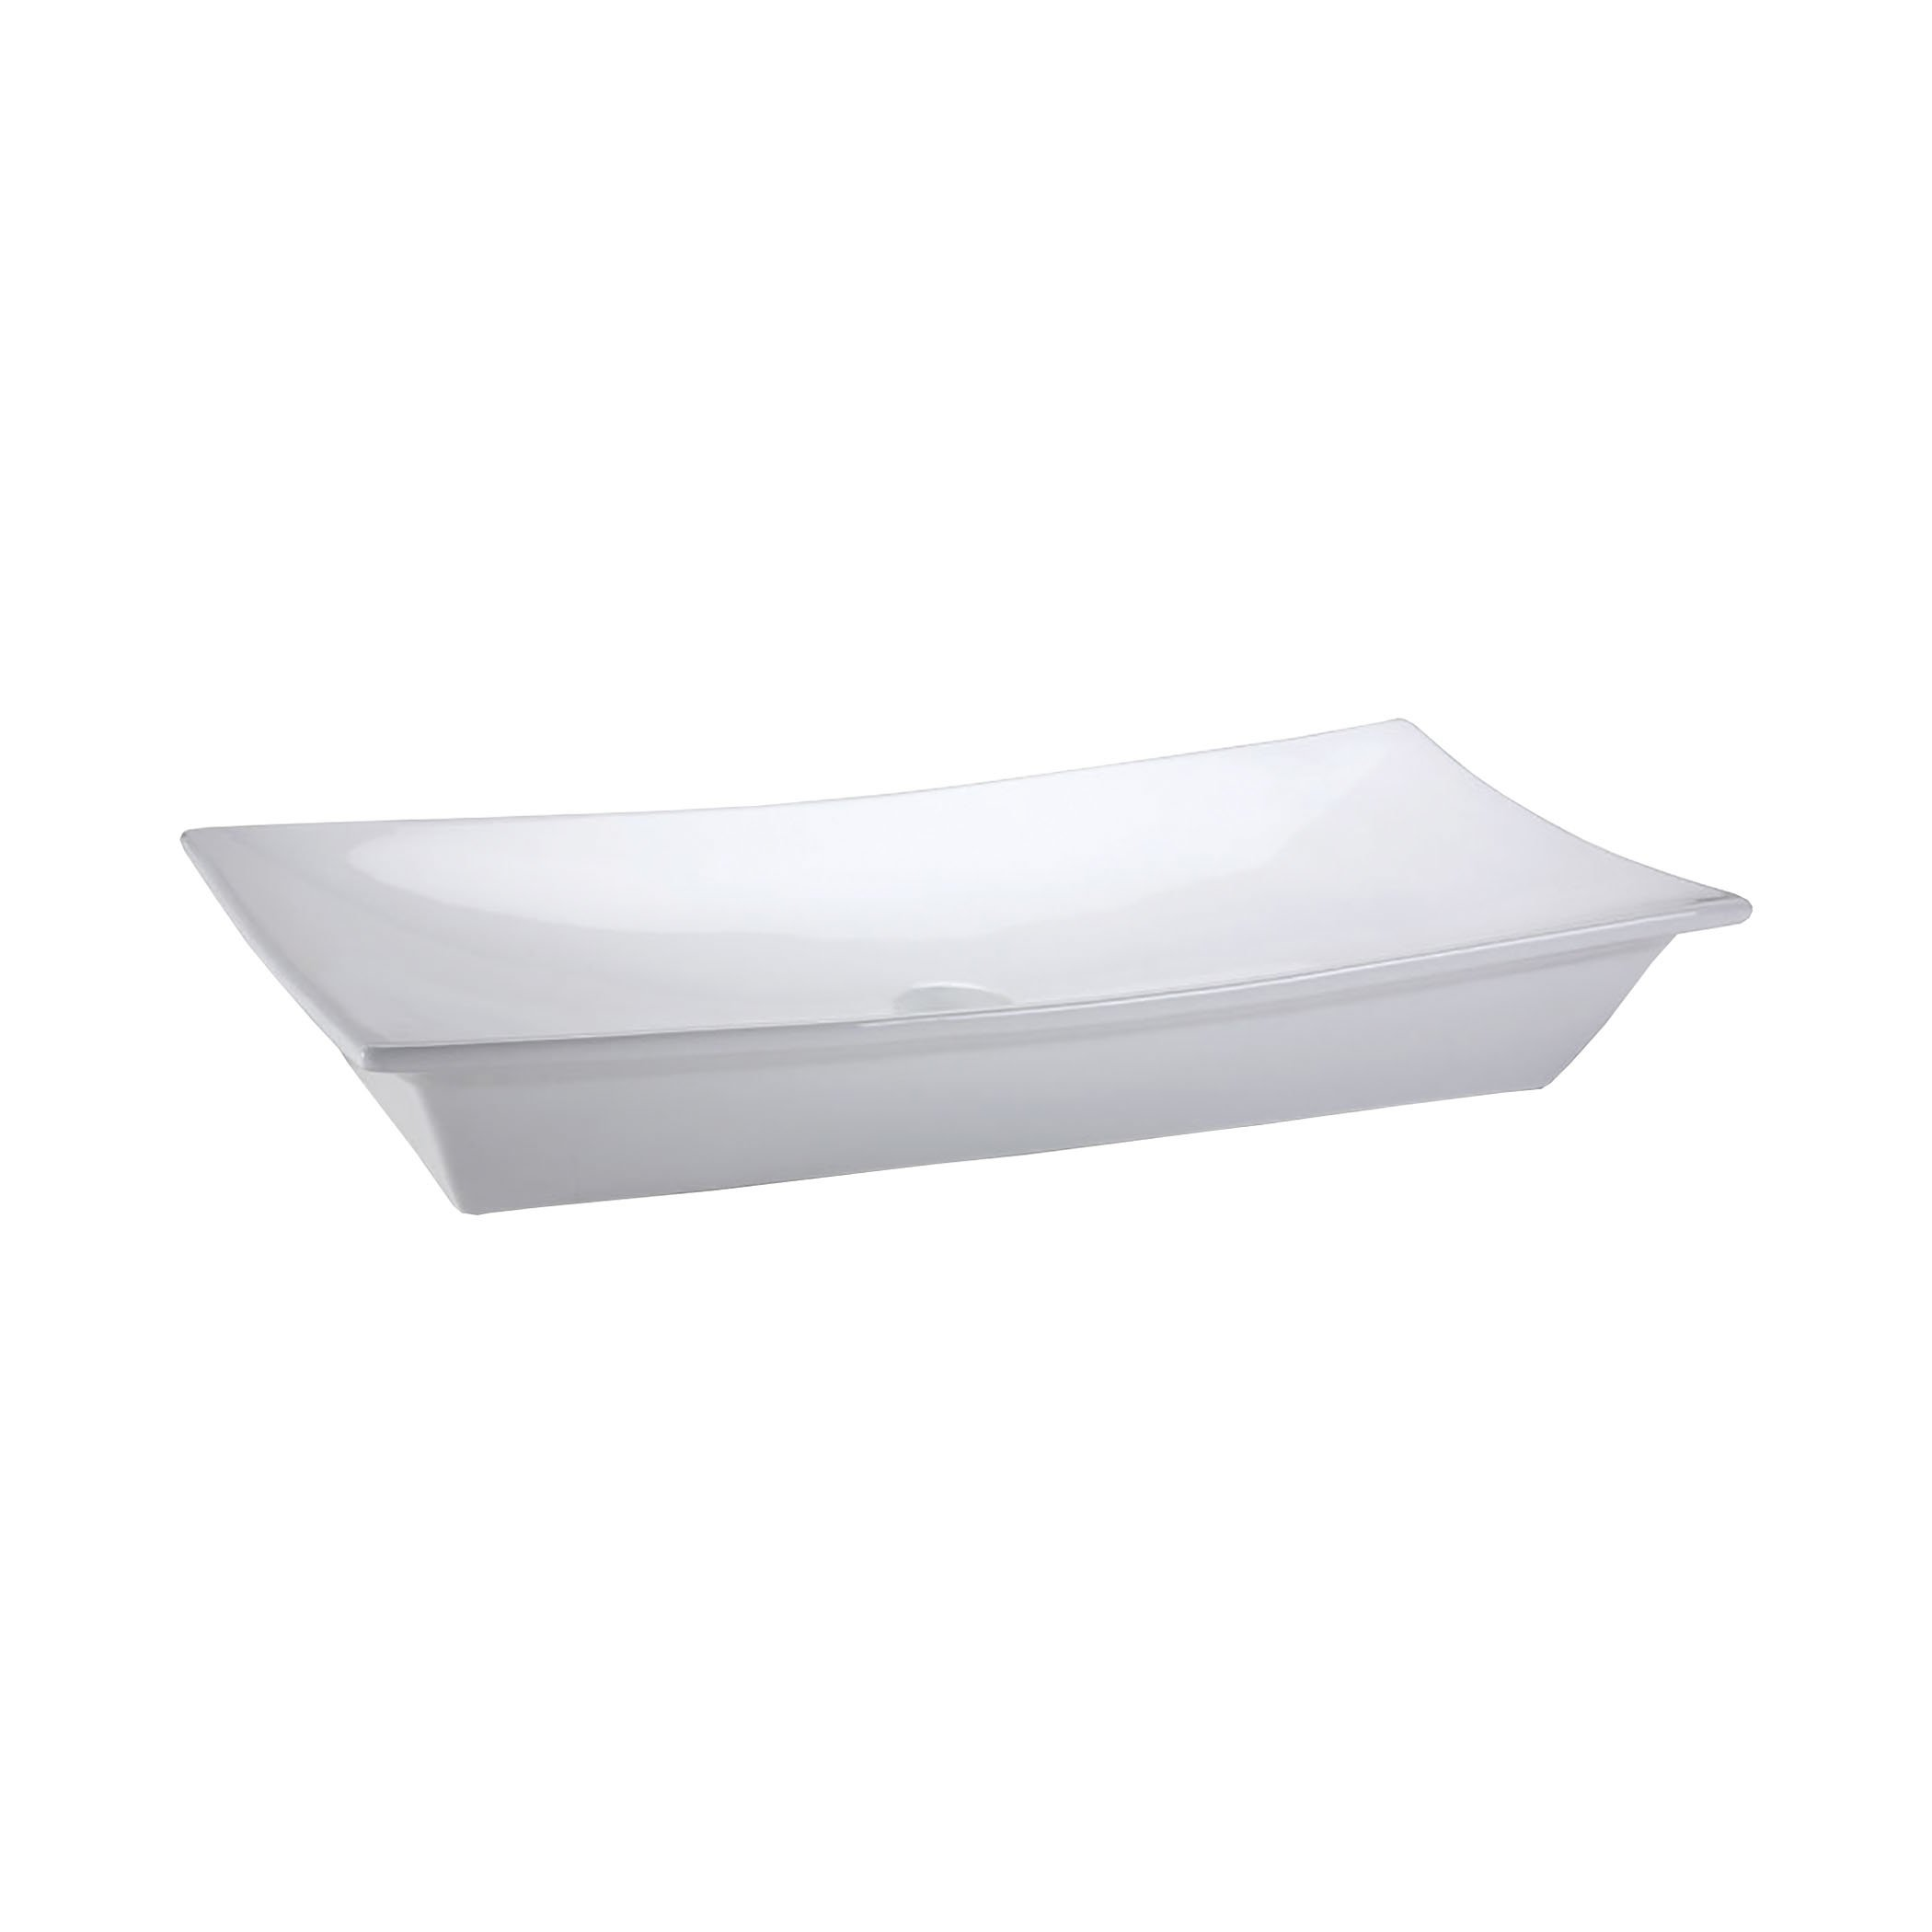 Rectangular vitreous china vessel sink with single-hole faucet drilling Sink Ryvyr